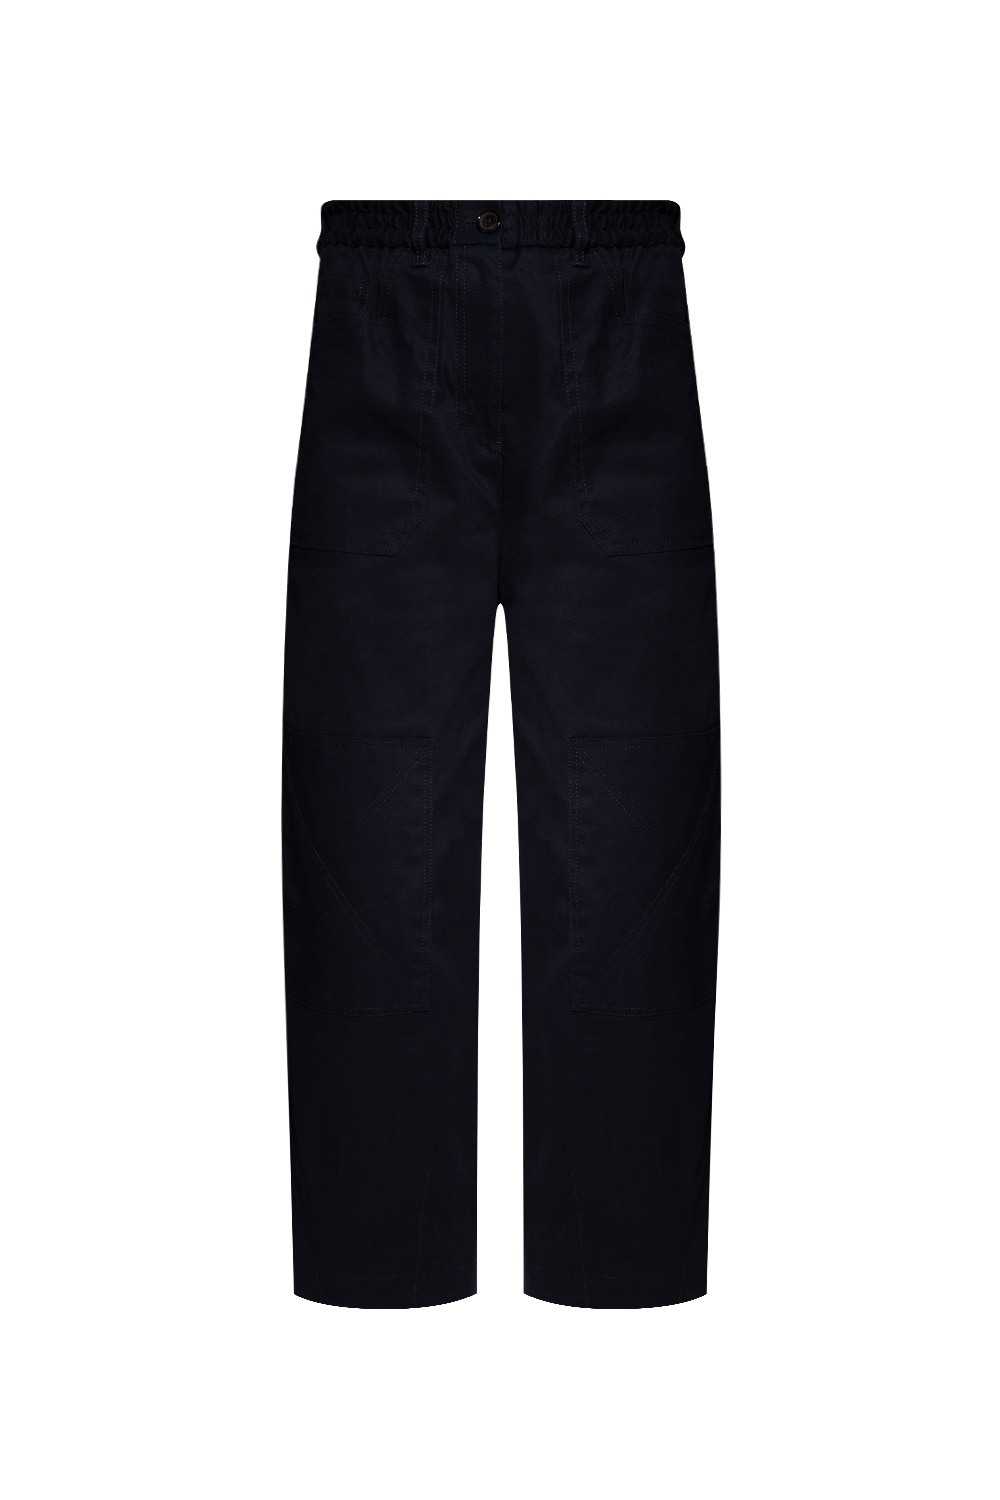 PS Paul Smith Trousers with stitching details